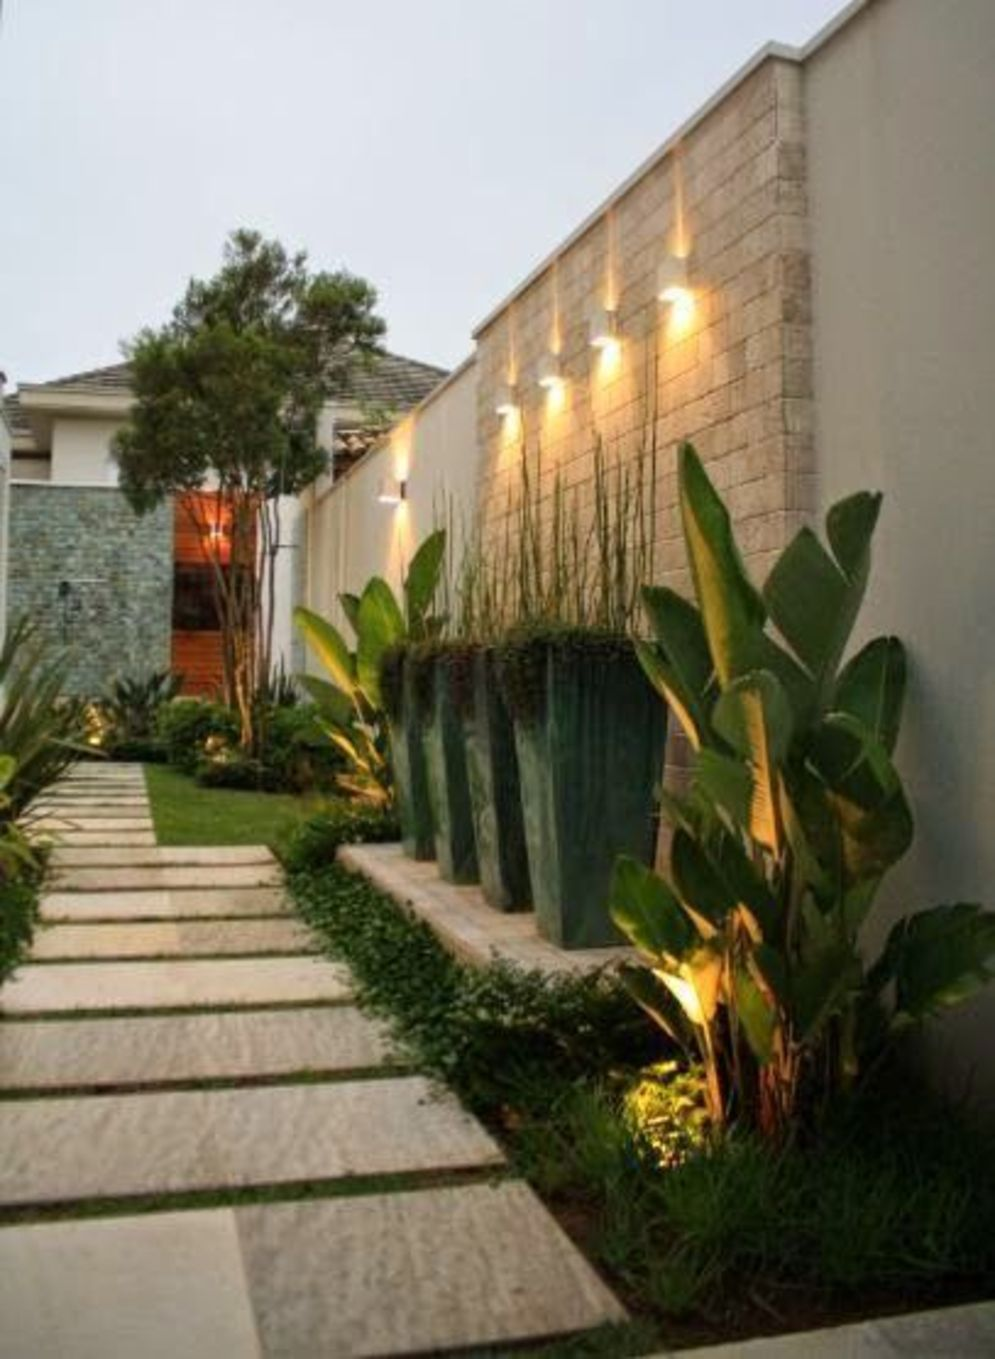 Lavish garden upgrade showing beautiful outdoor light schemes that liven up the landscape view Image 44